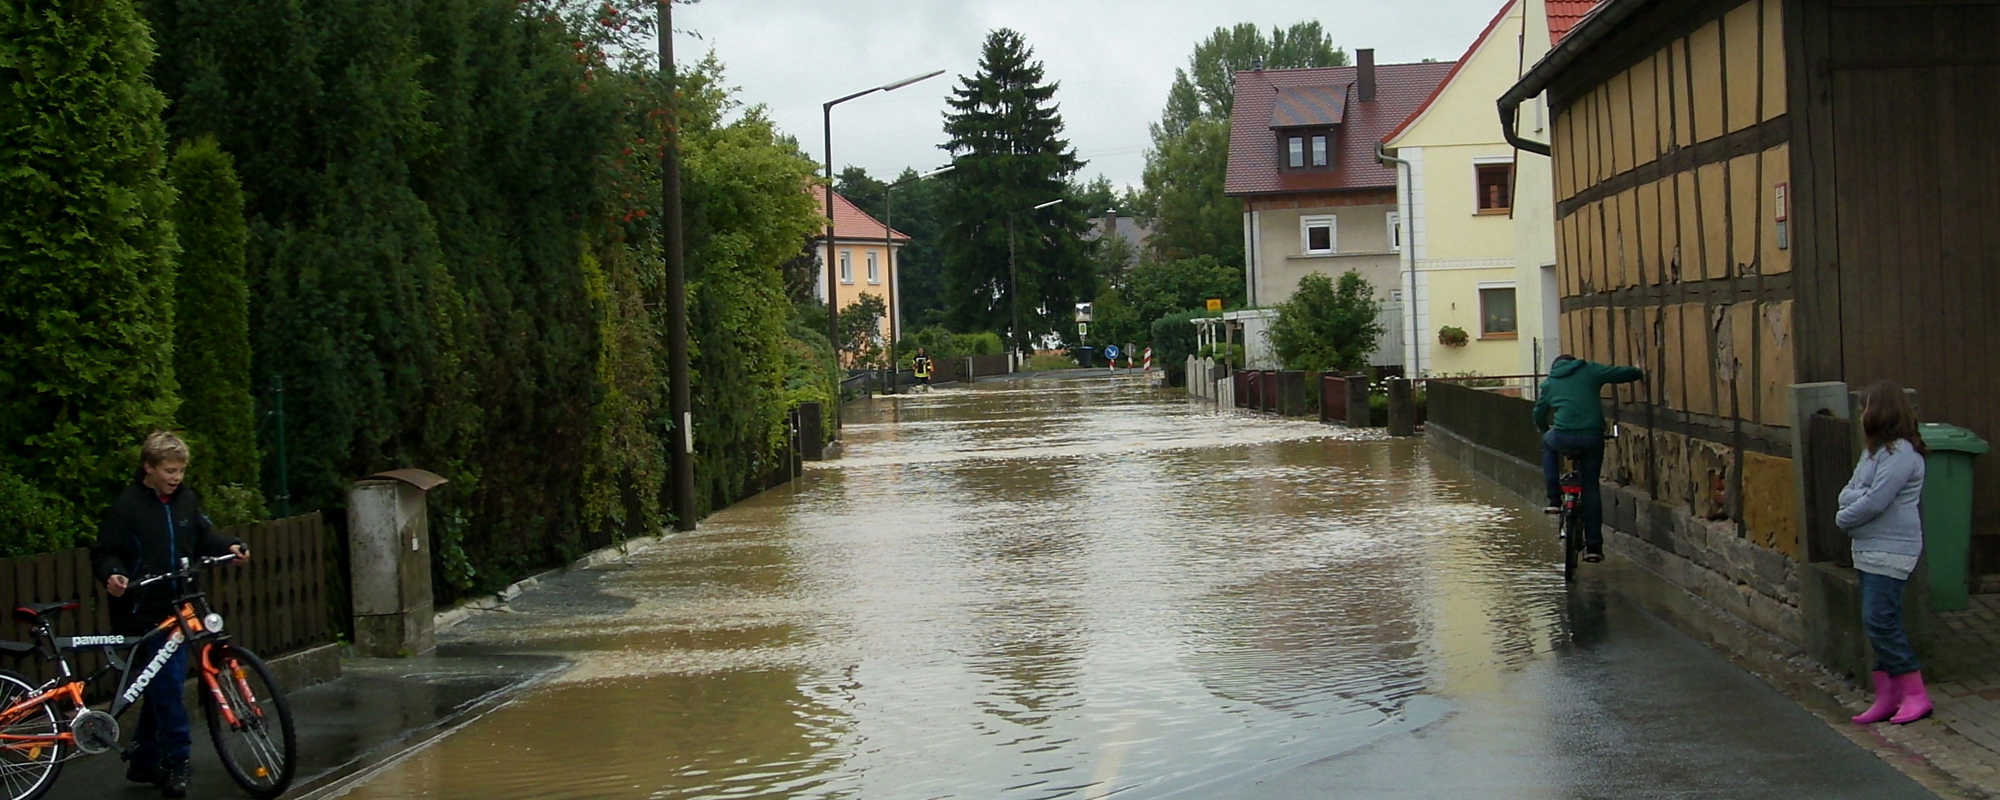 Flood water risk planning